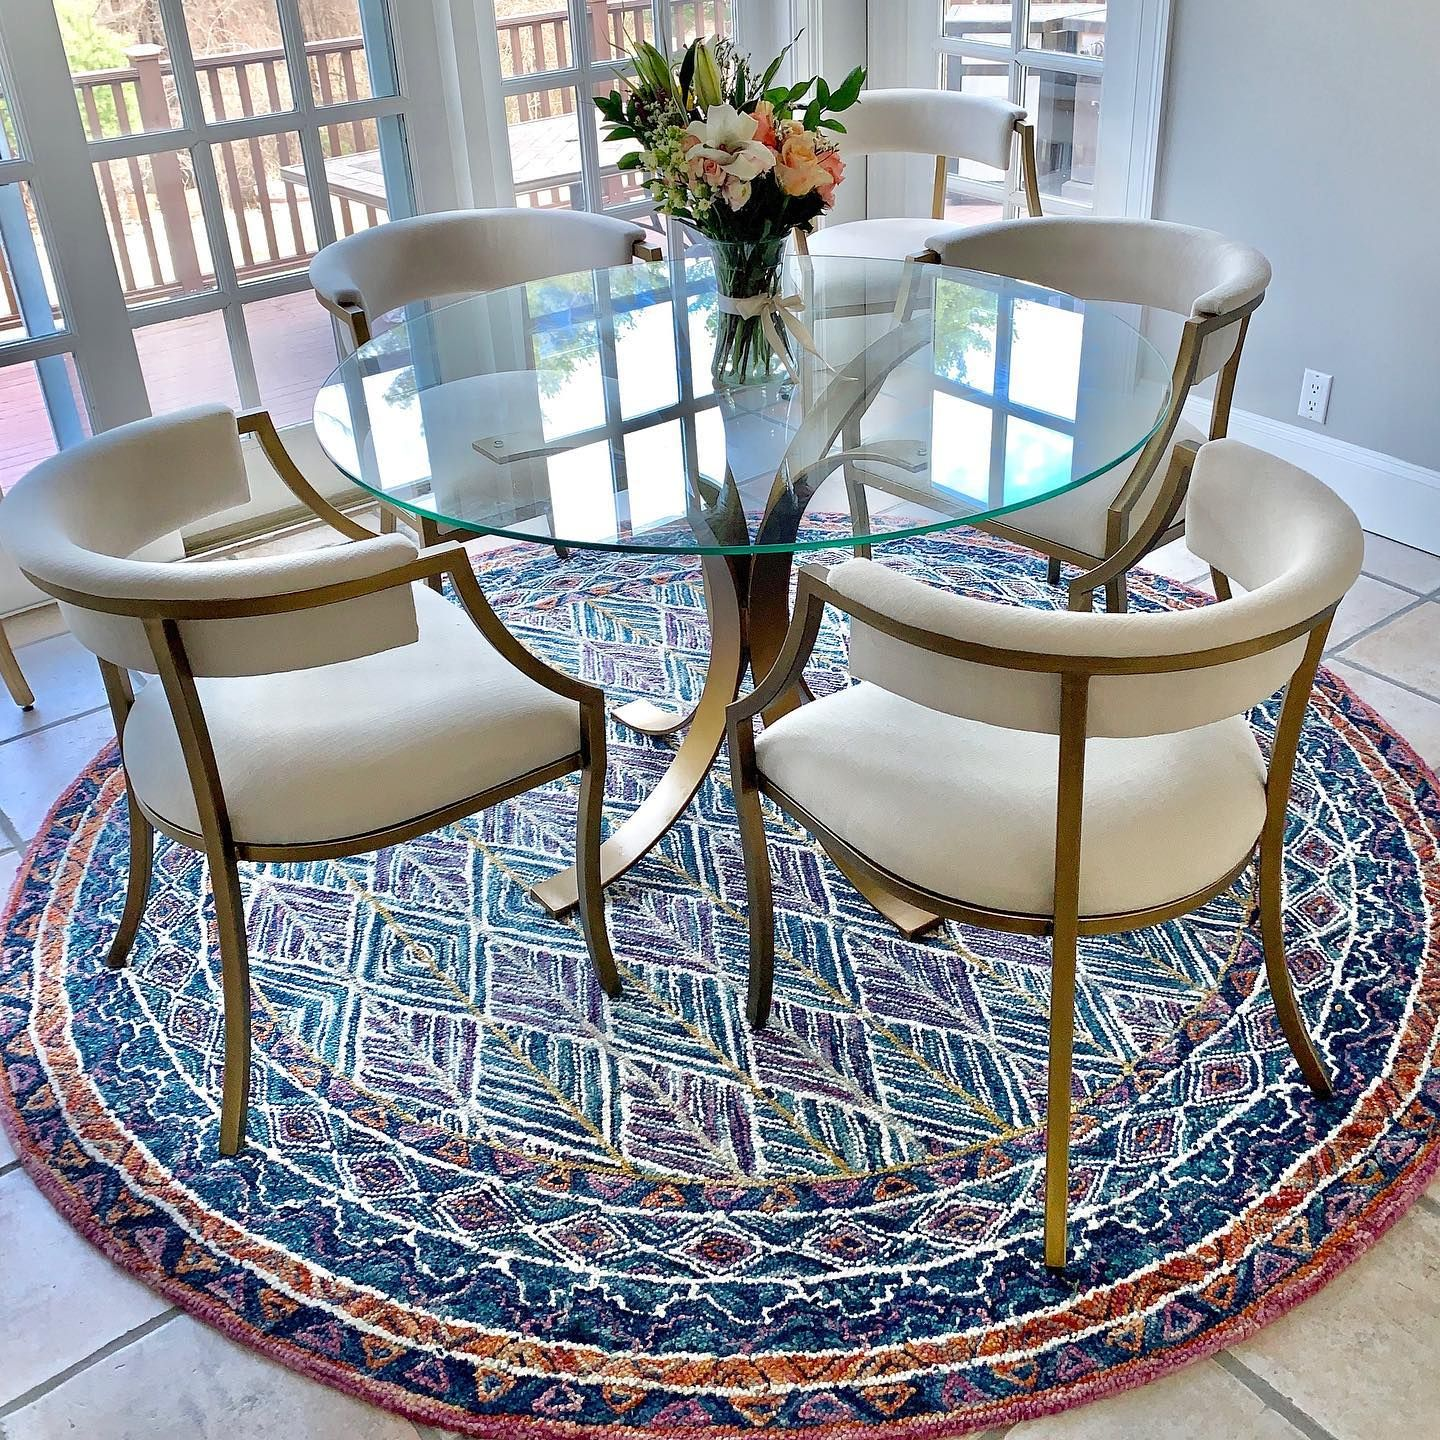 Ada Upholstered Dining Chairs Set Of 2 Glass Dining Room Table Glass Round Dining Table Round Dining Room Sets